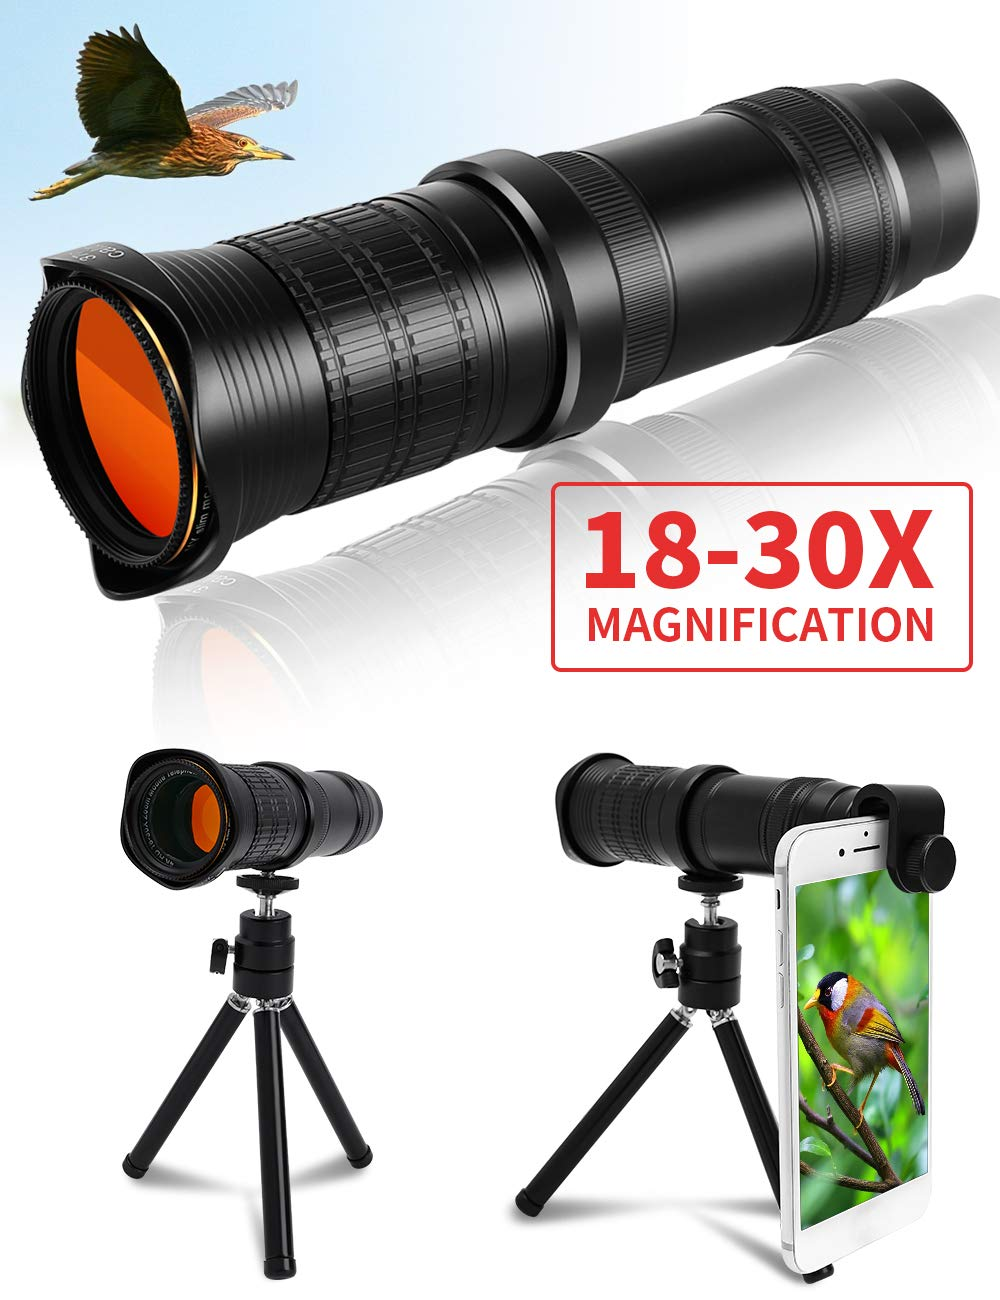 AIRSOFTPEAK Monocular Telescope 18-30X37 High Powered Dual Zoom Monocular Scope HD for Smartphone Spotting Scope with Tripod Compact Monocular for Adults Bird Watching Hunting by AIRSOFTPEAK